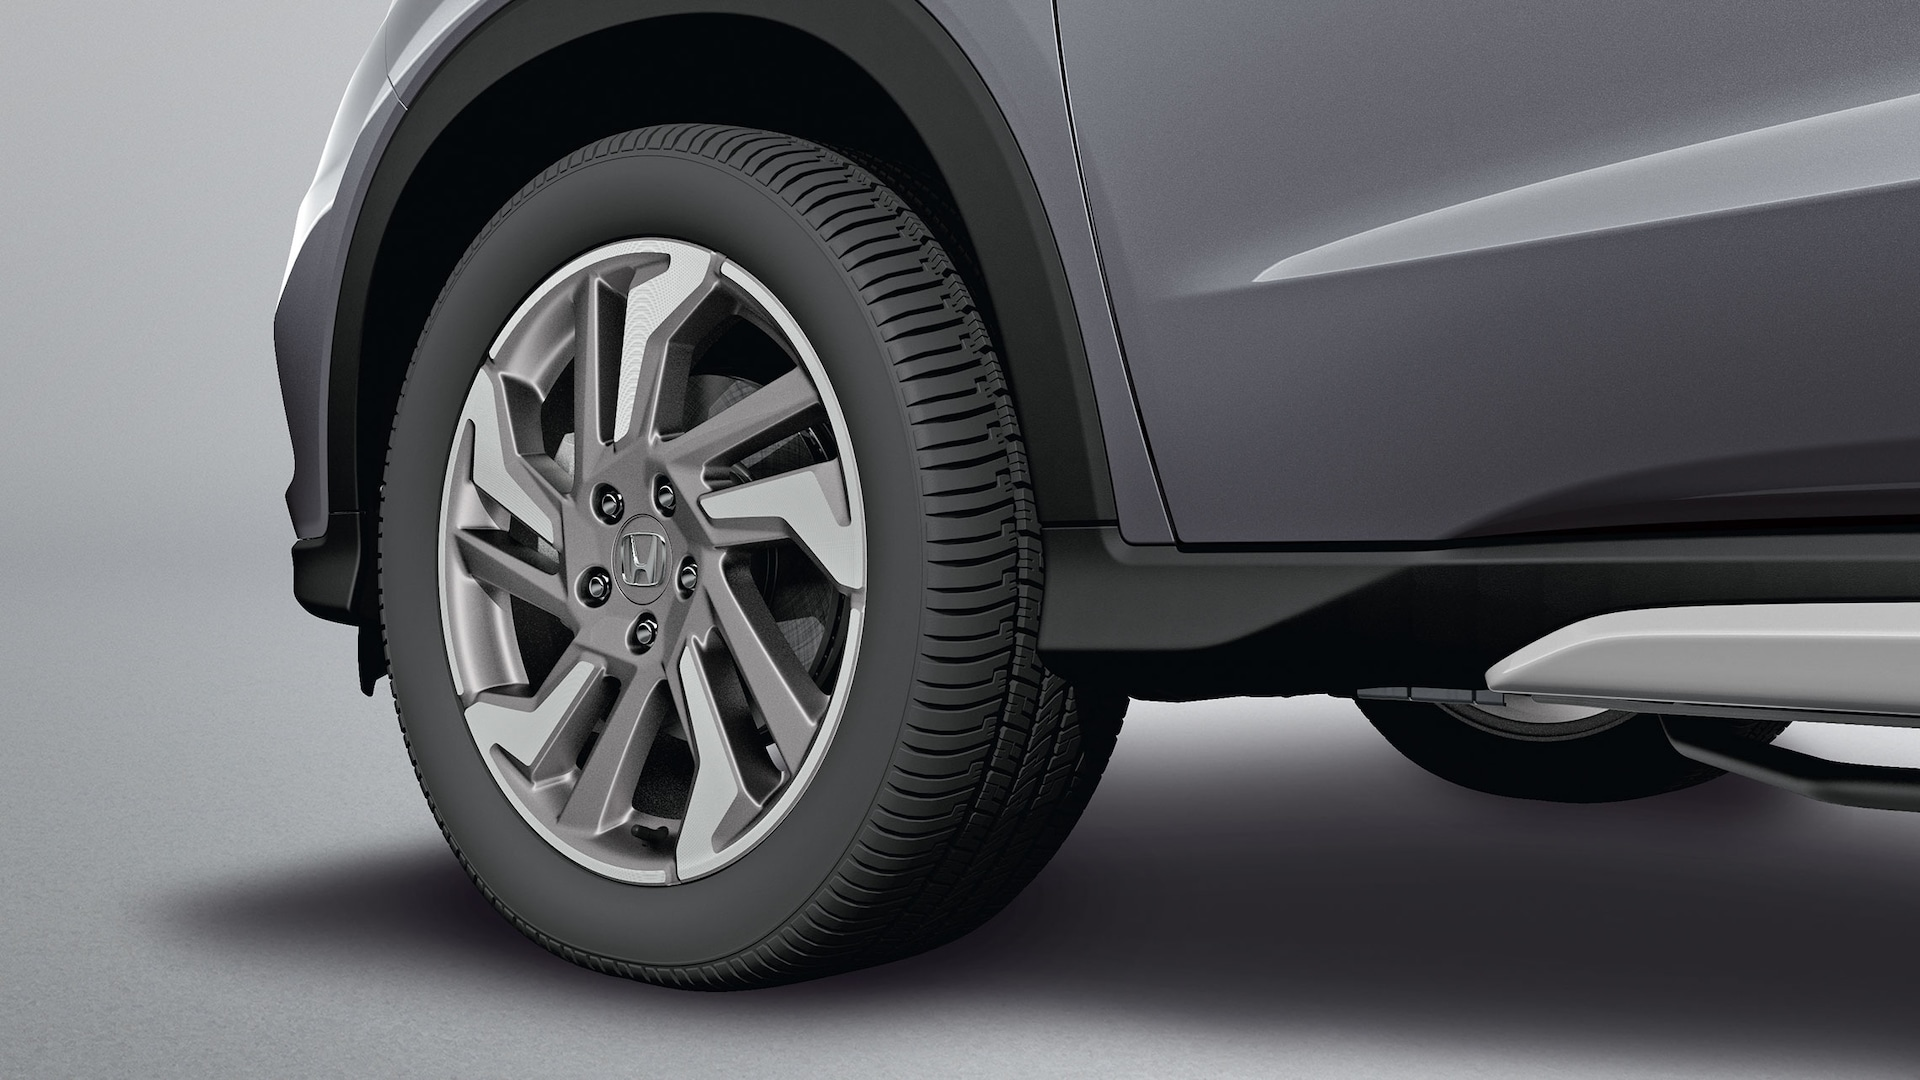 Accessory 18-inch alloy wheel detail on the 2019 Honda HR-V.